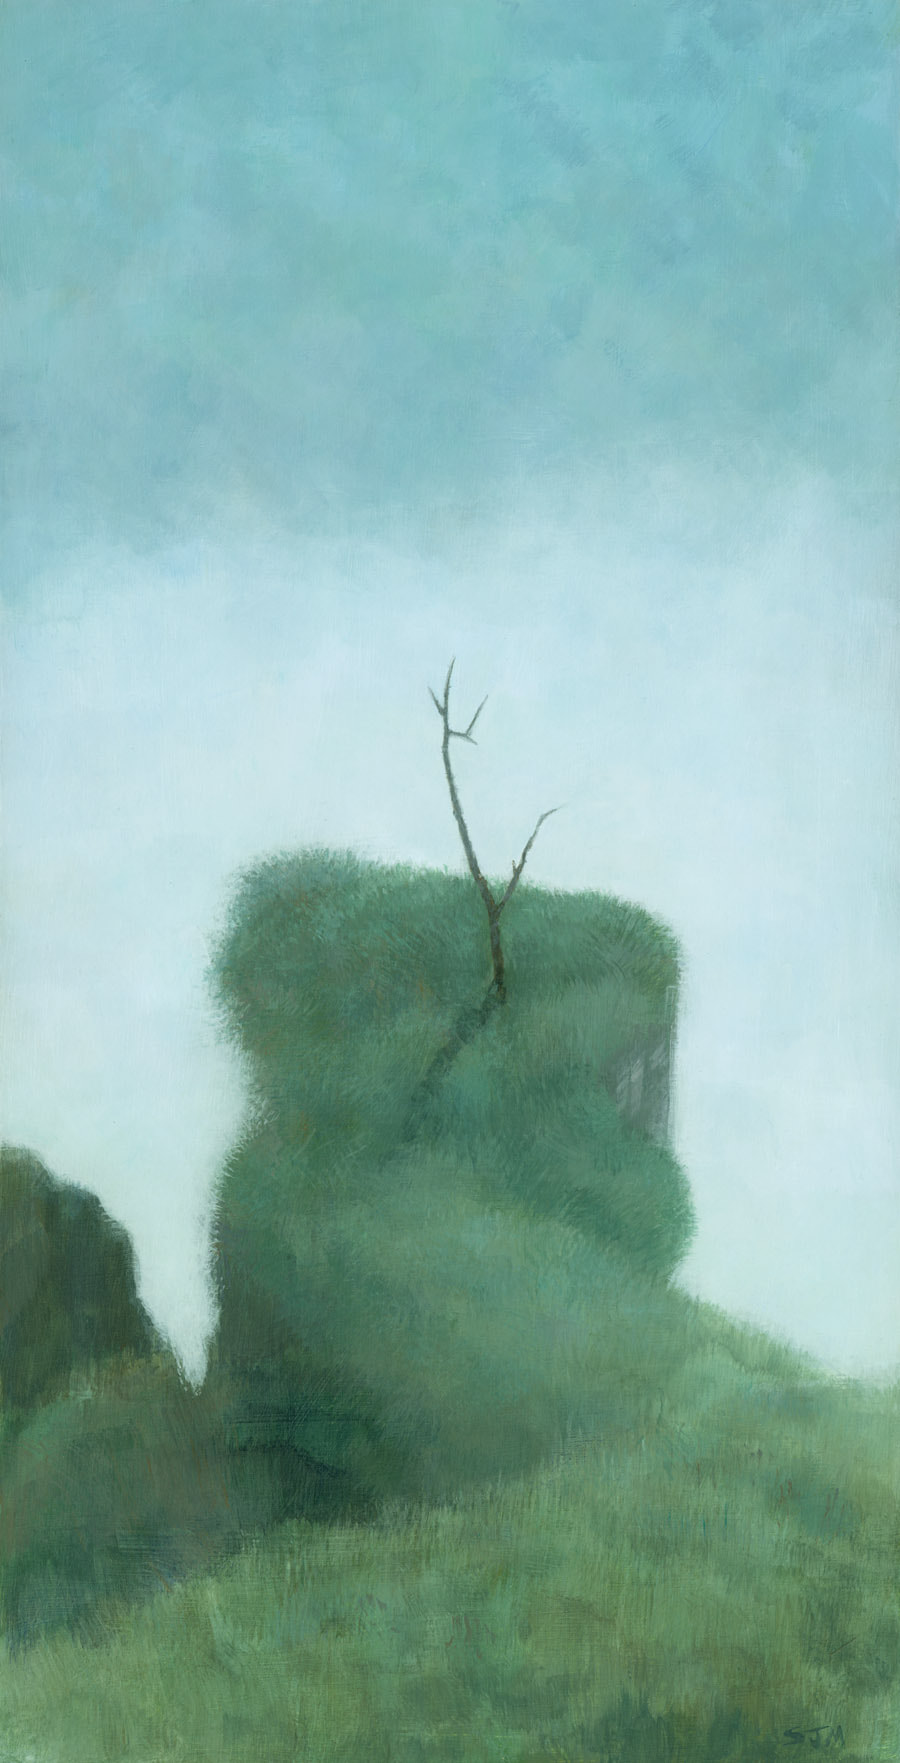 Tree at Iguazu, a muted landscape painting duck egg blue and green, by artist Stephen Mitchell